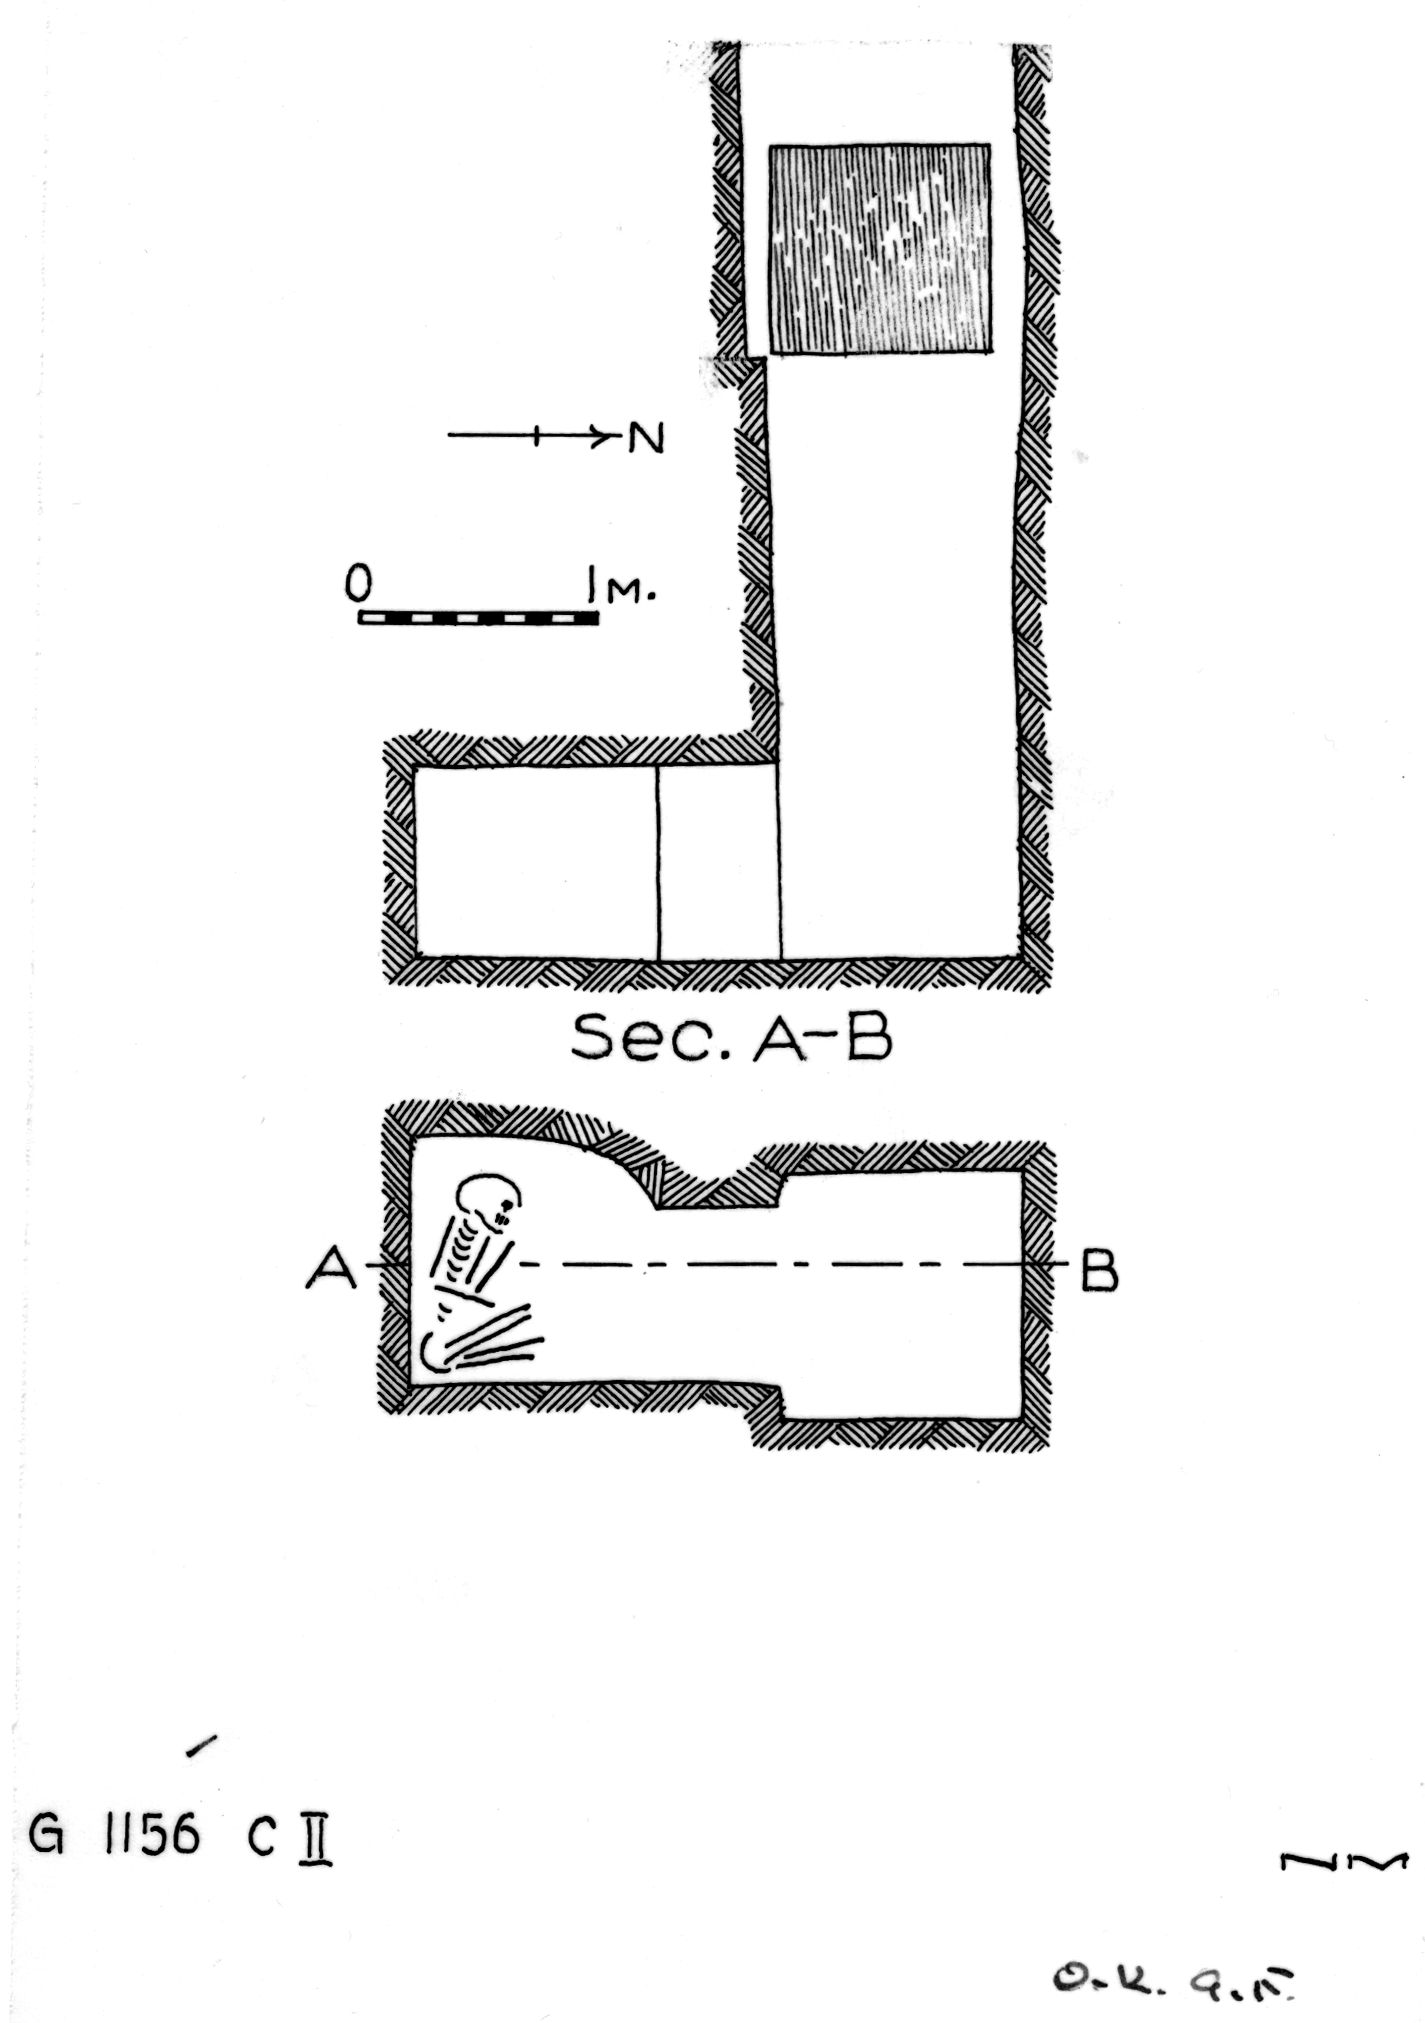 Maps and plans: G 1156, Shaft C (II)